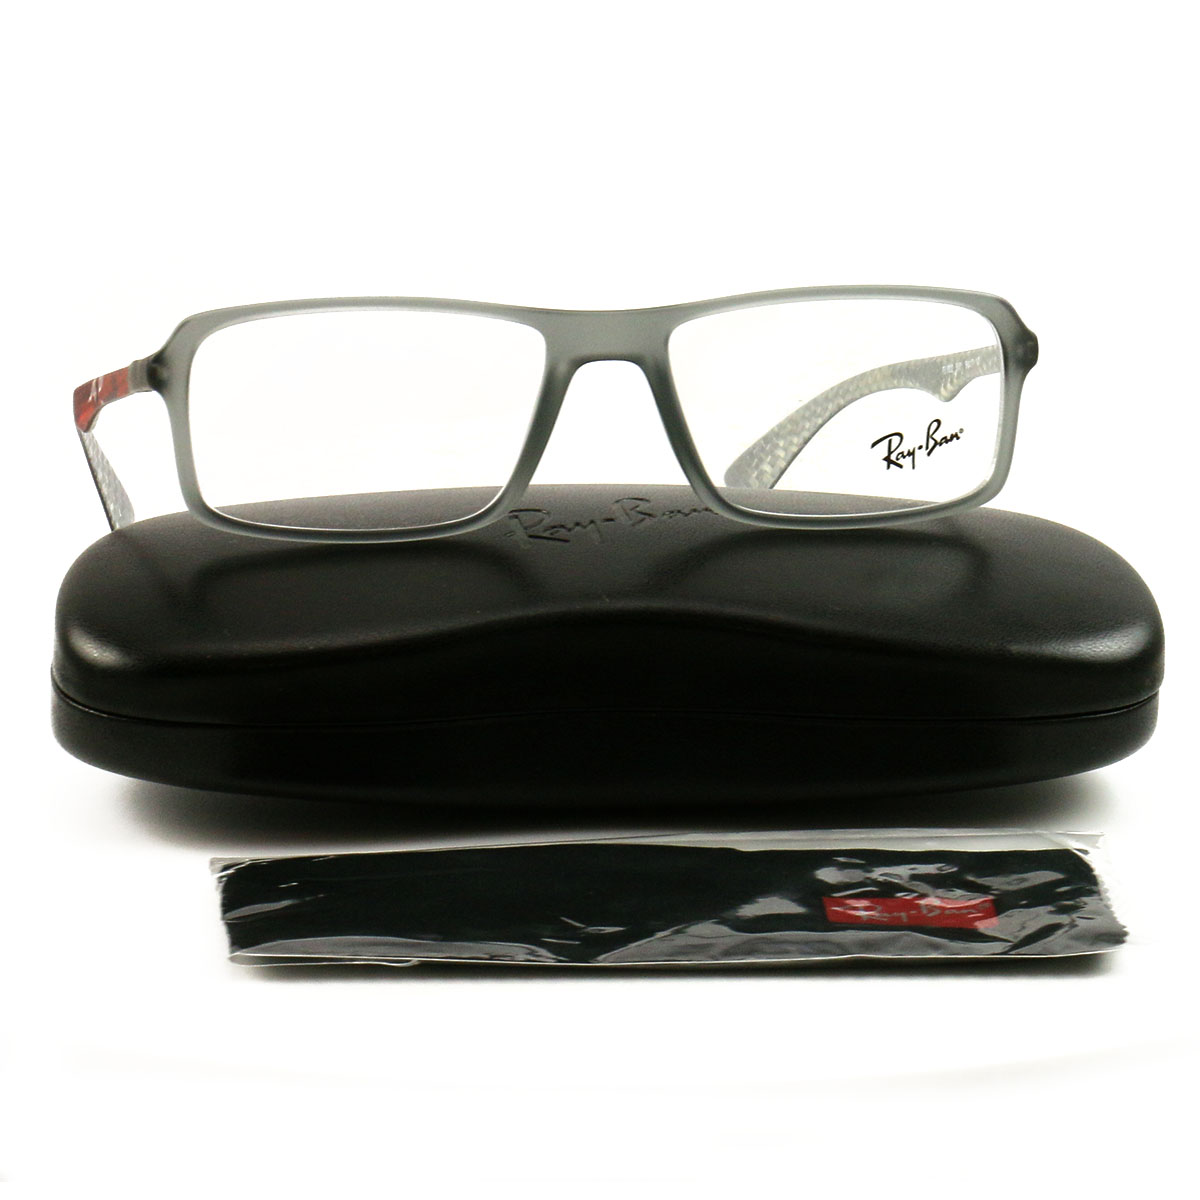 a6d9764443 New Ray Ban Eyeglasses RX 8902-5481 Clear Gray Red Orange Acetate 54 17 145